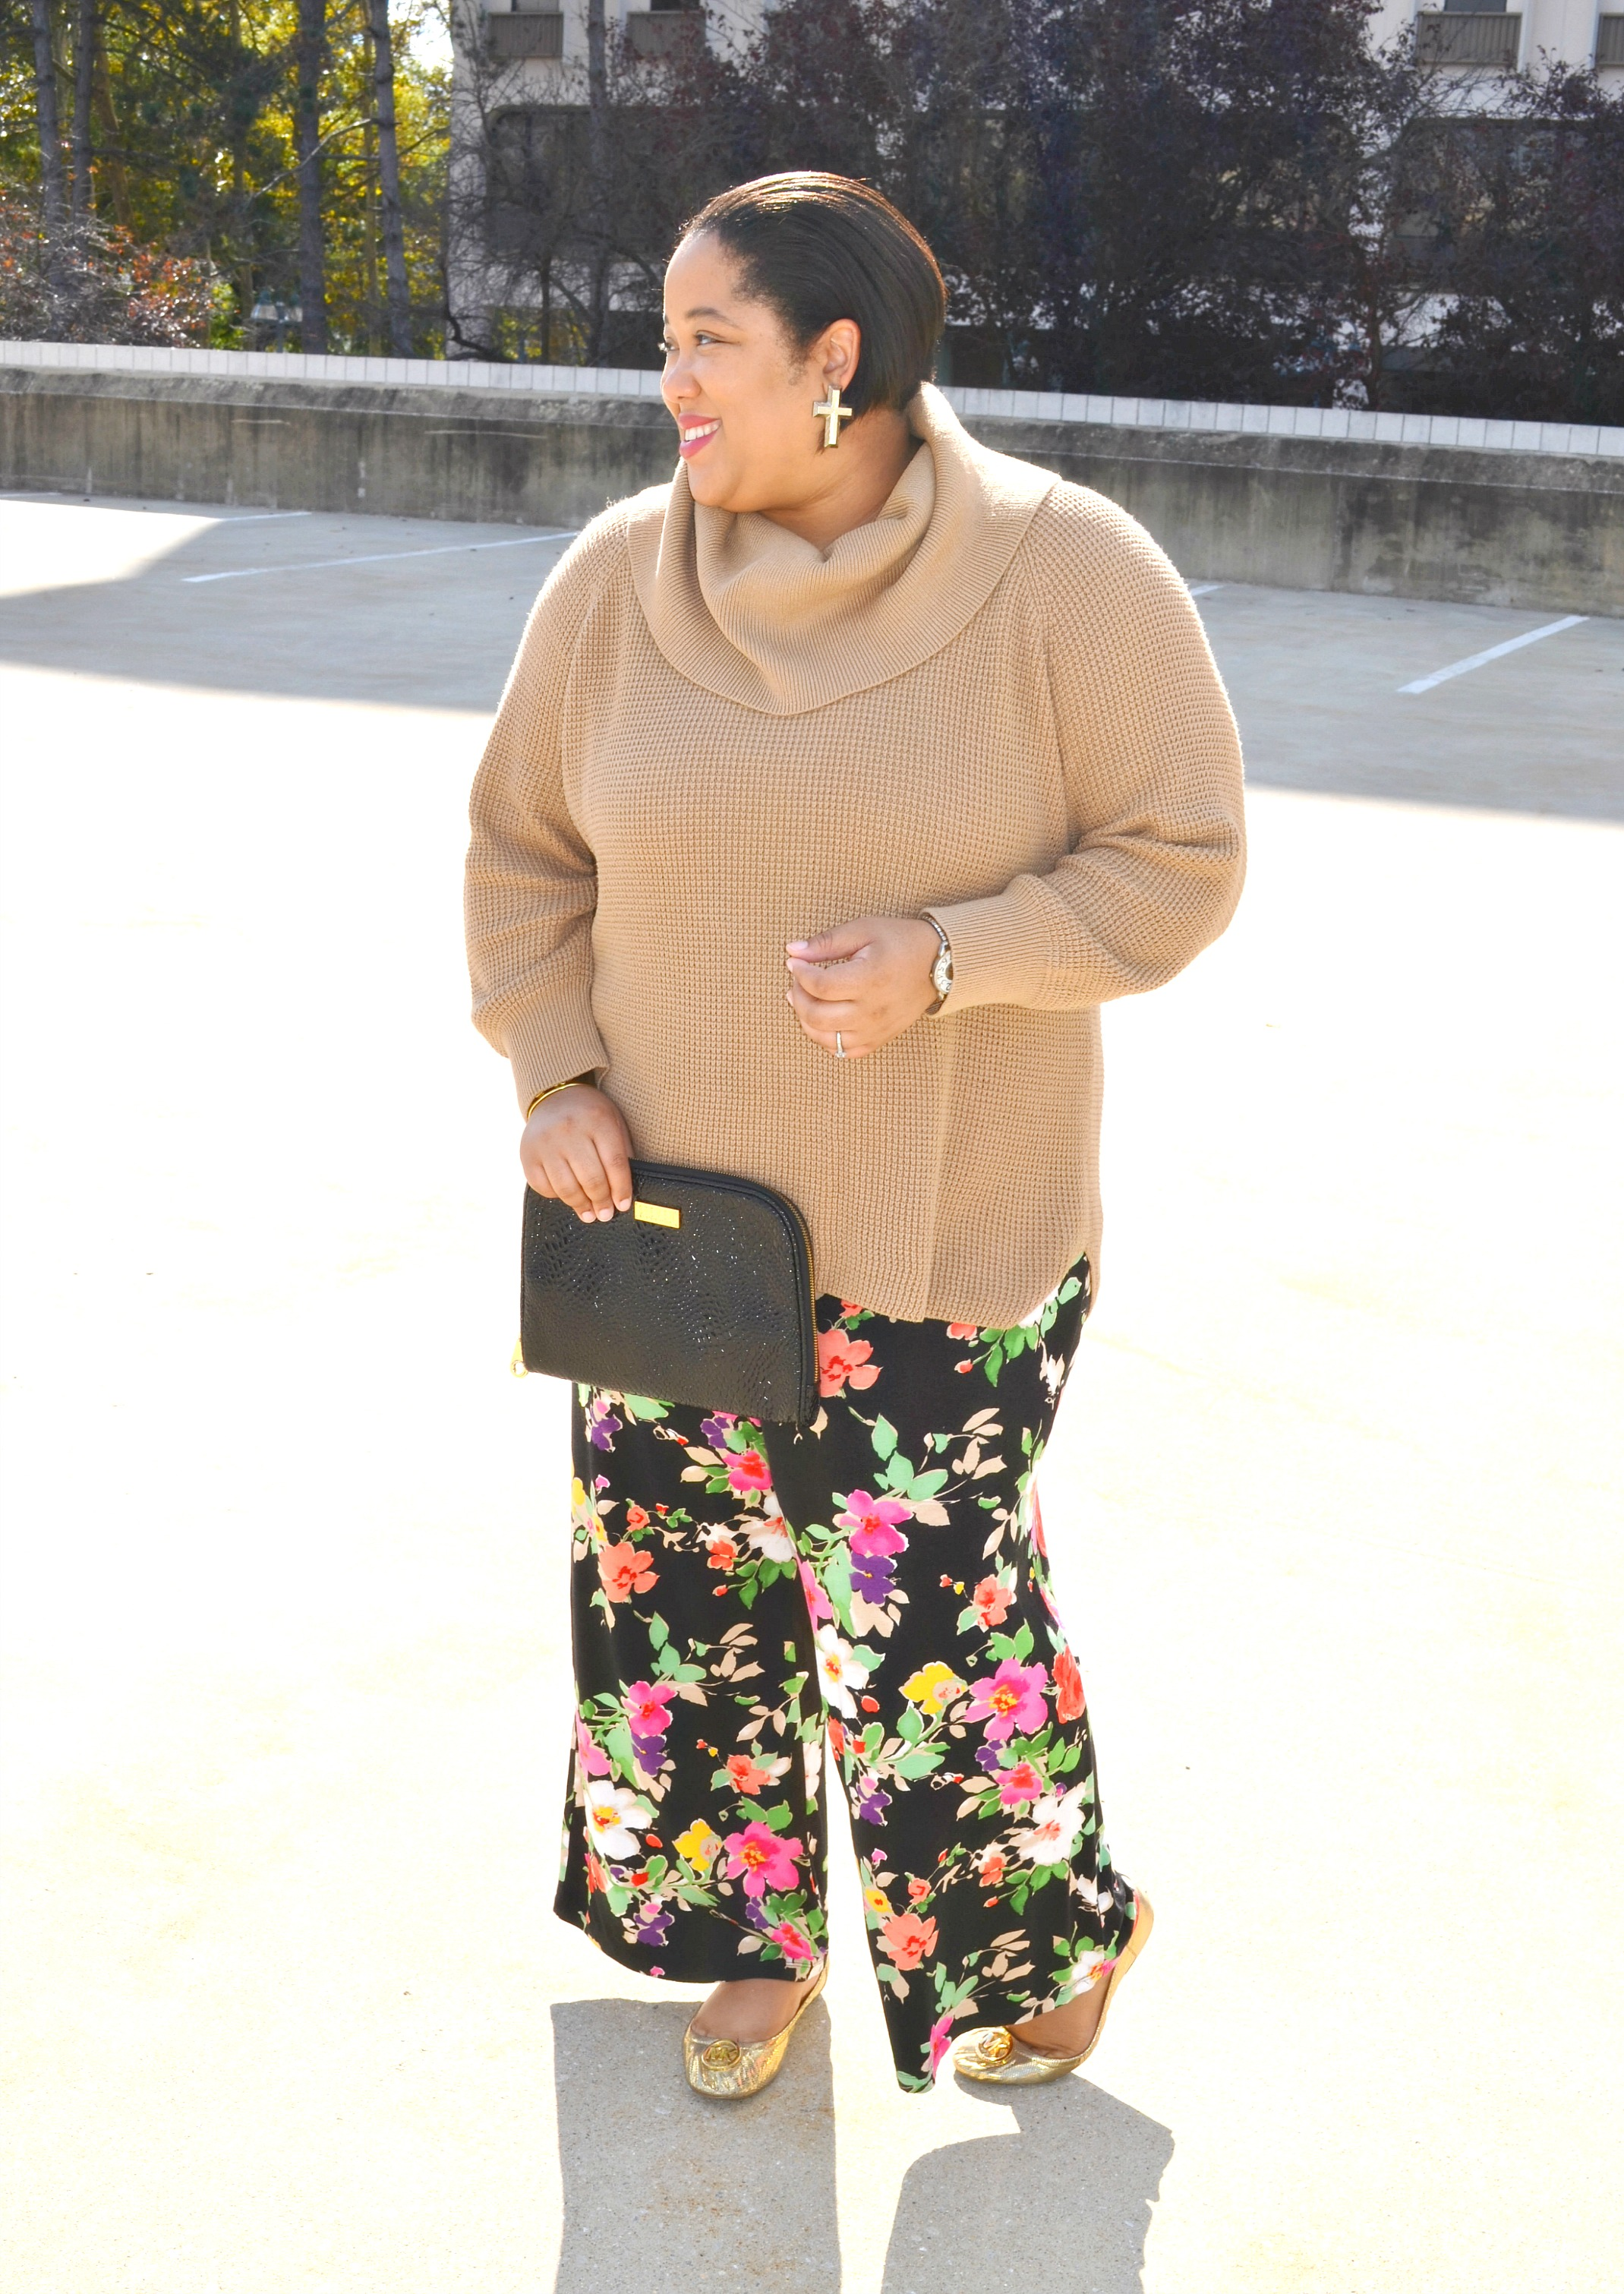 Fall Florals - Fall Outfit Inspiration